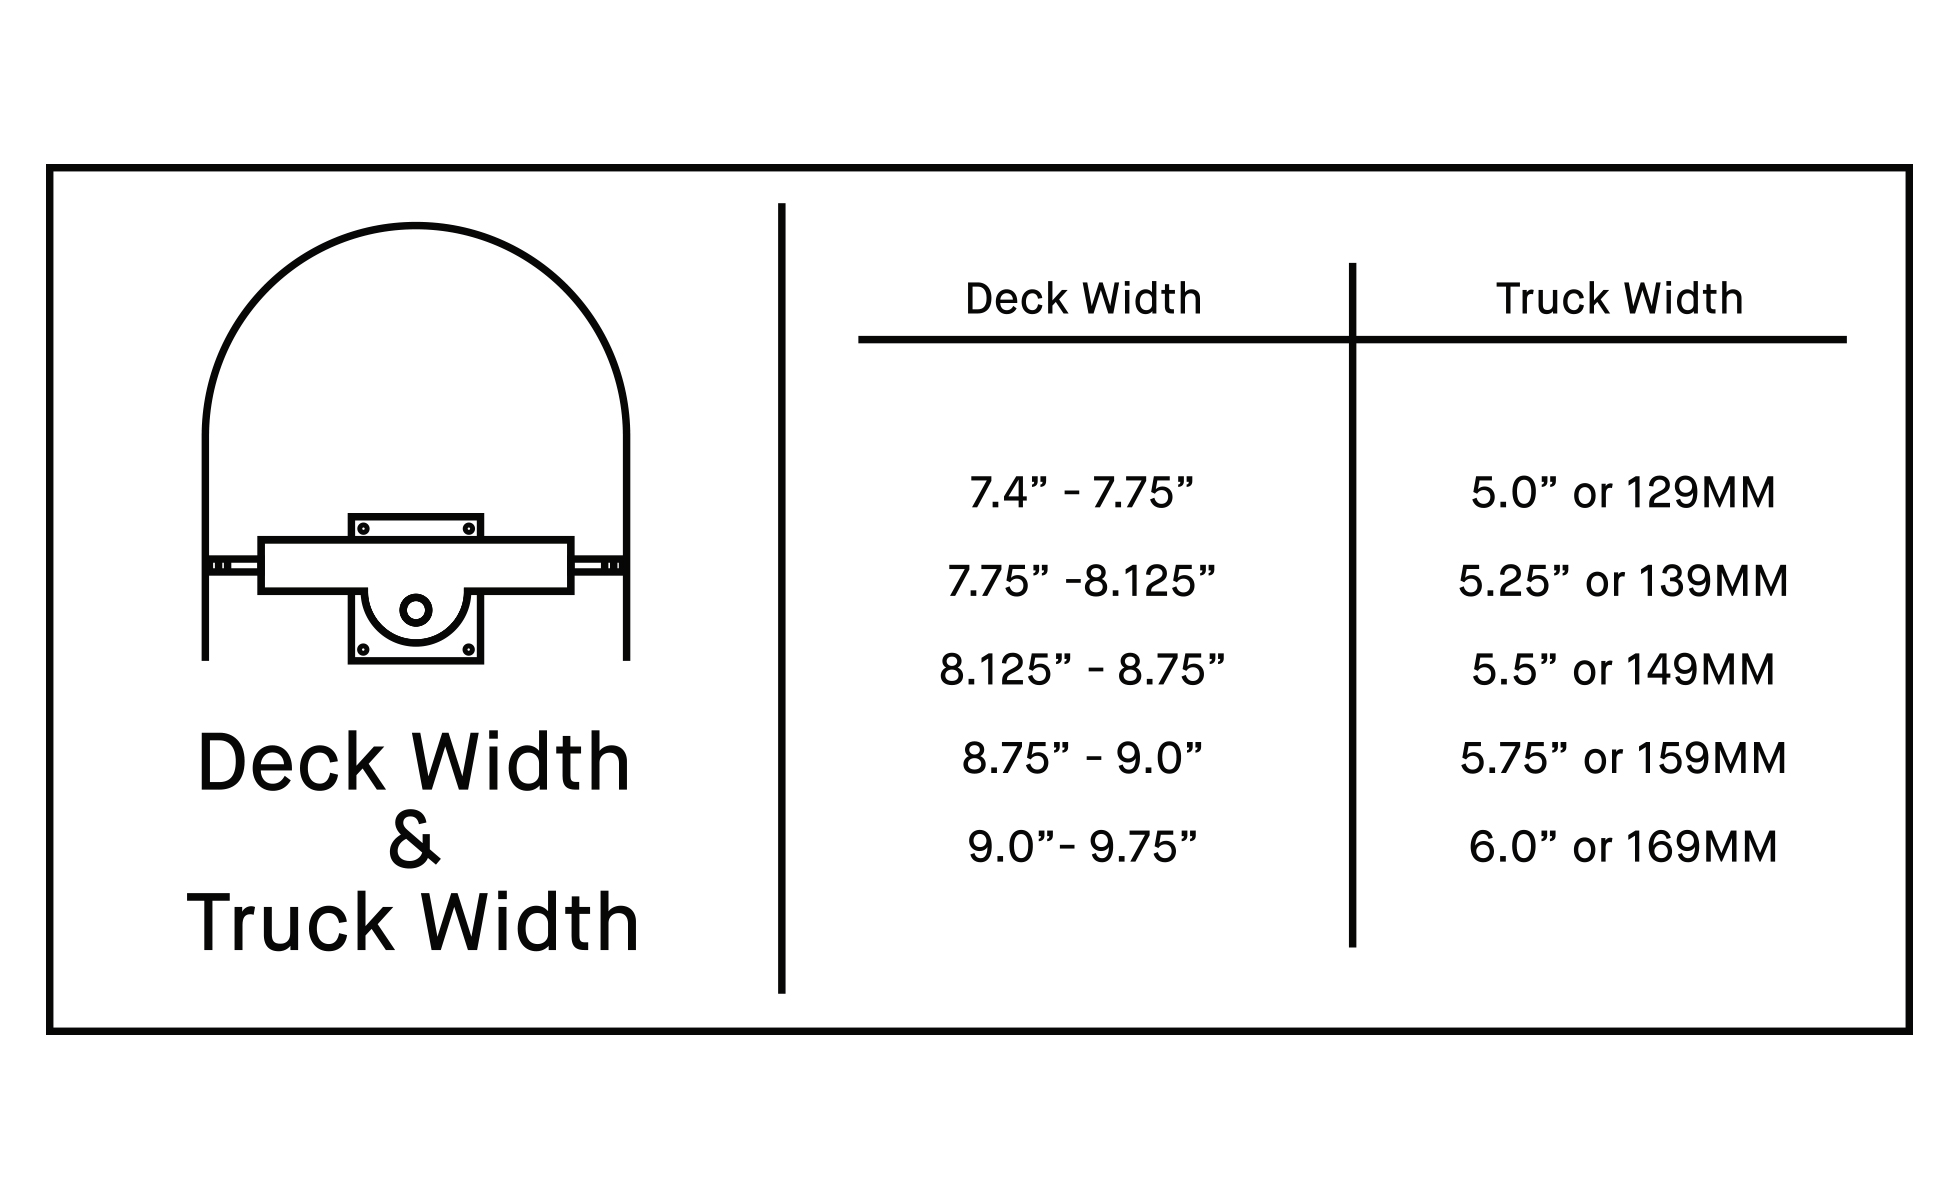 Skateboard Truck Buyers Guide 2021 - Deck Width To Truck Size Needed